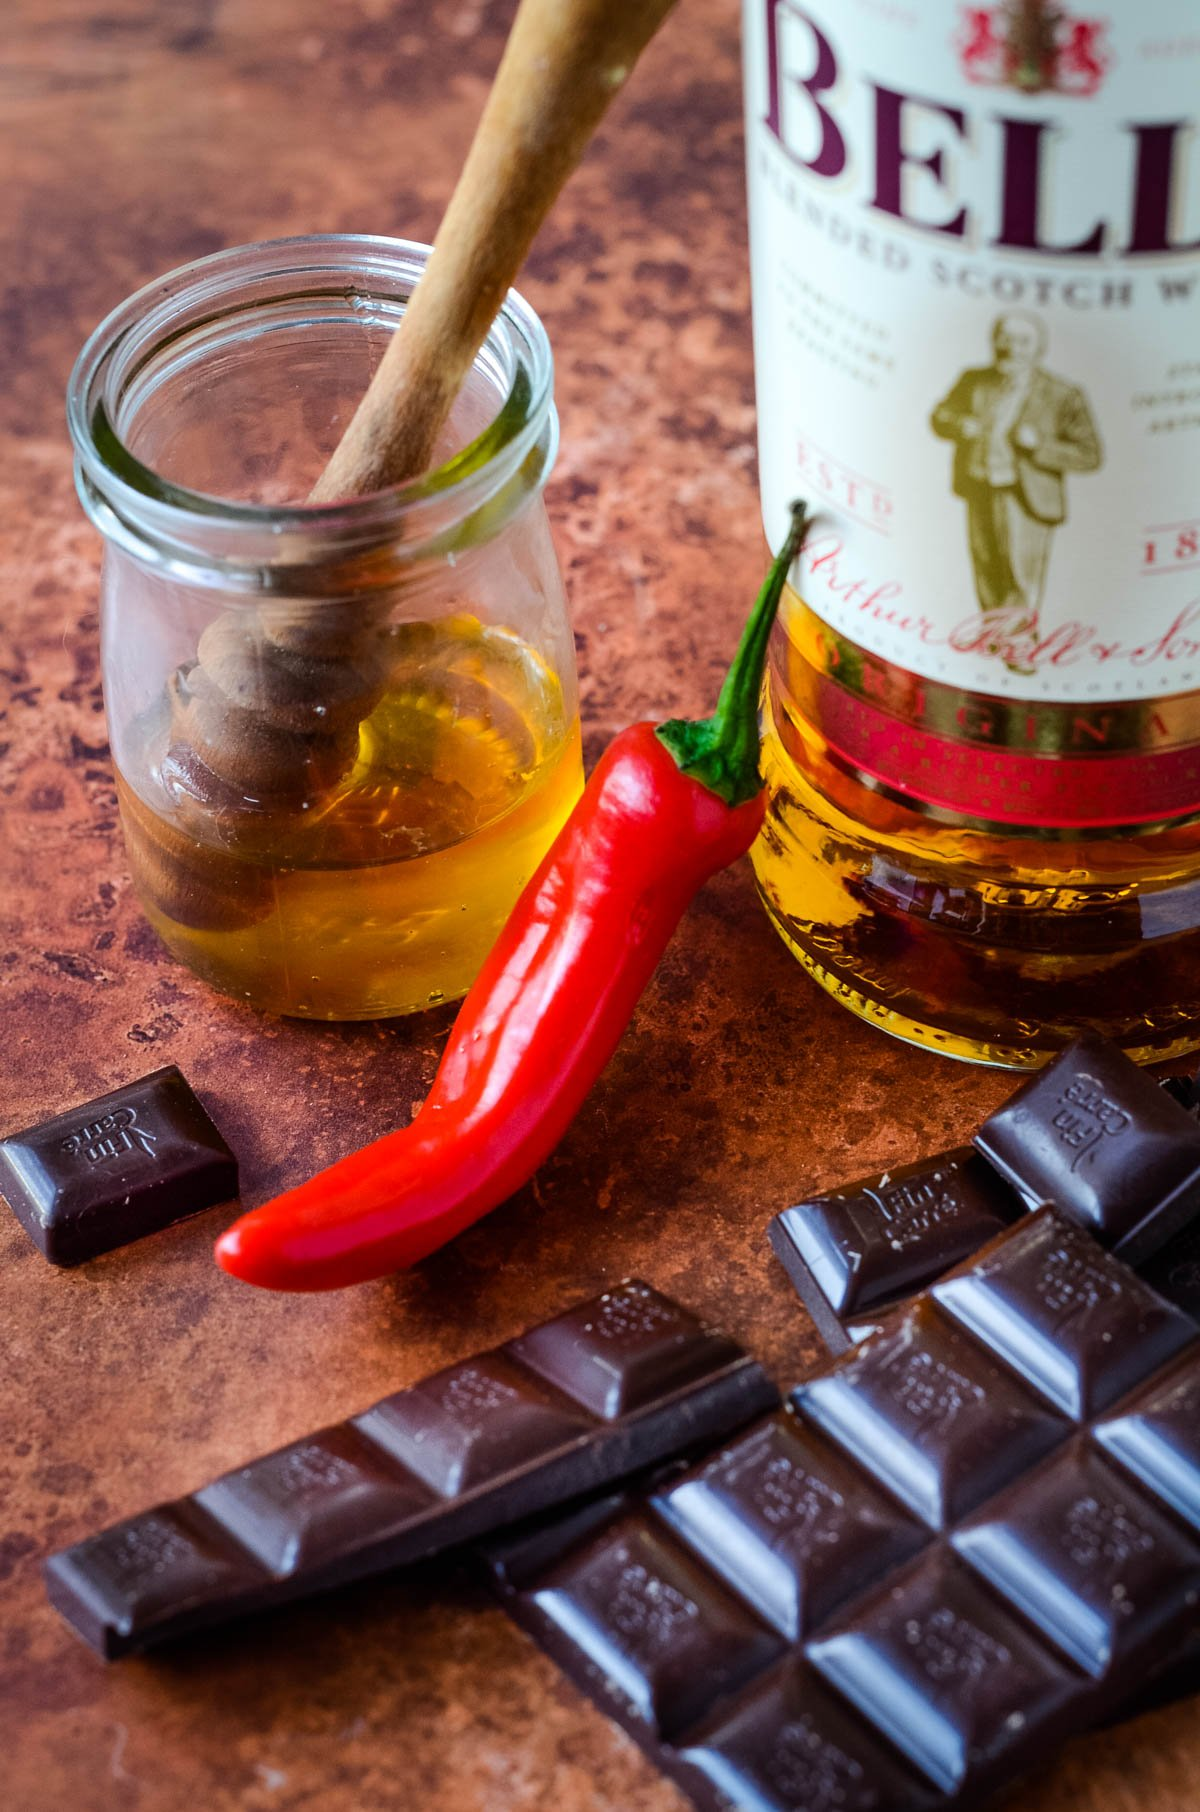 ingredients for chocolate liqueur